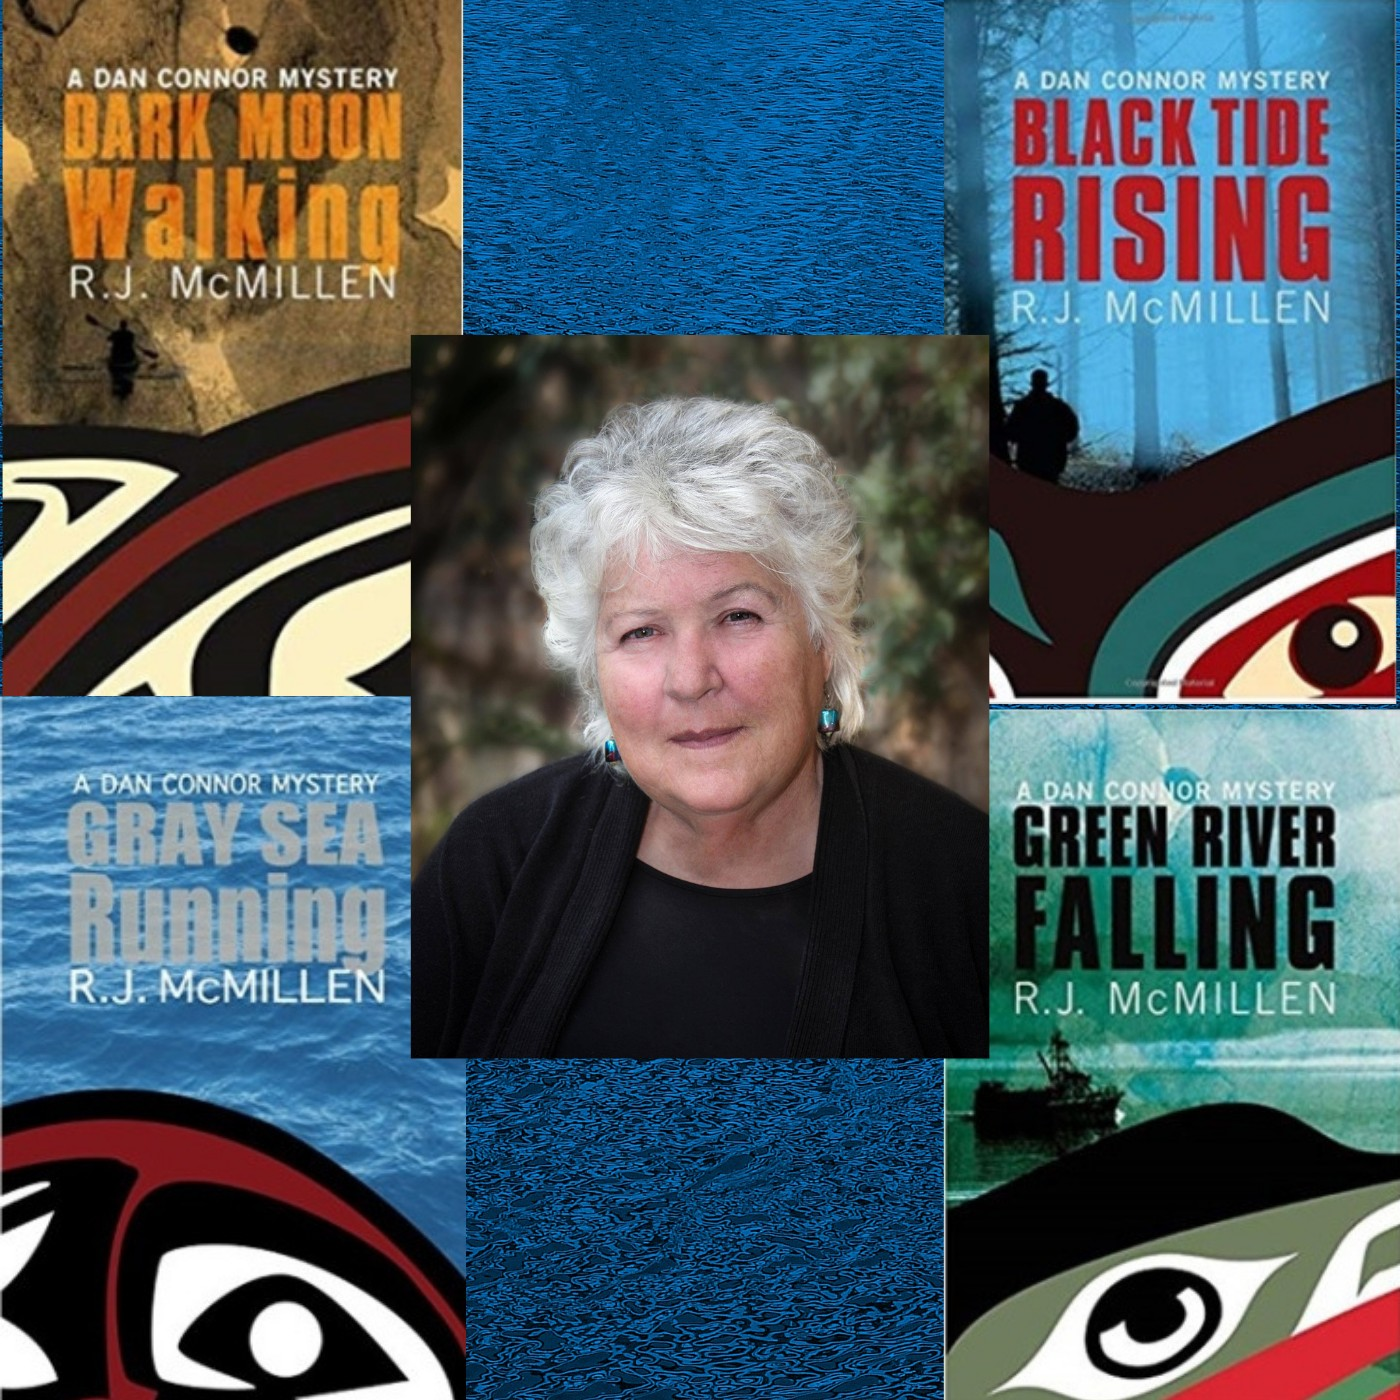 The Writer's Block - How spending more than 30 years on a sailboat along 1,000 miles of the remote Pacific Northwest led Canadian author R.J. McMillen to her renowned and widely popular Dan Connor Mystery series.